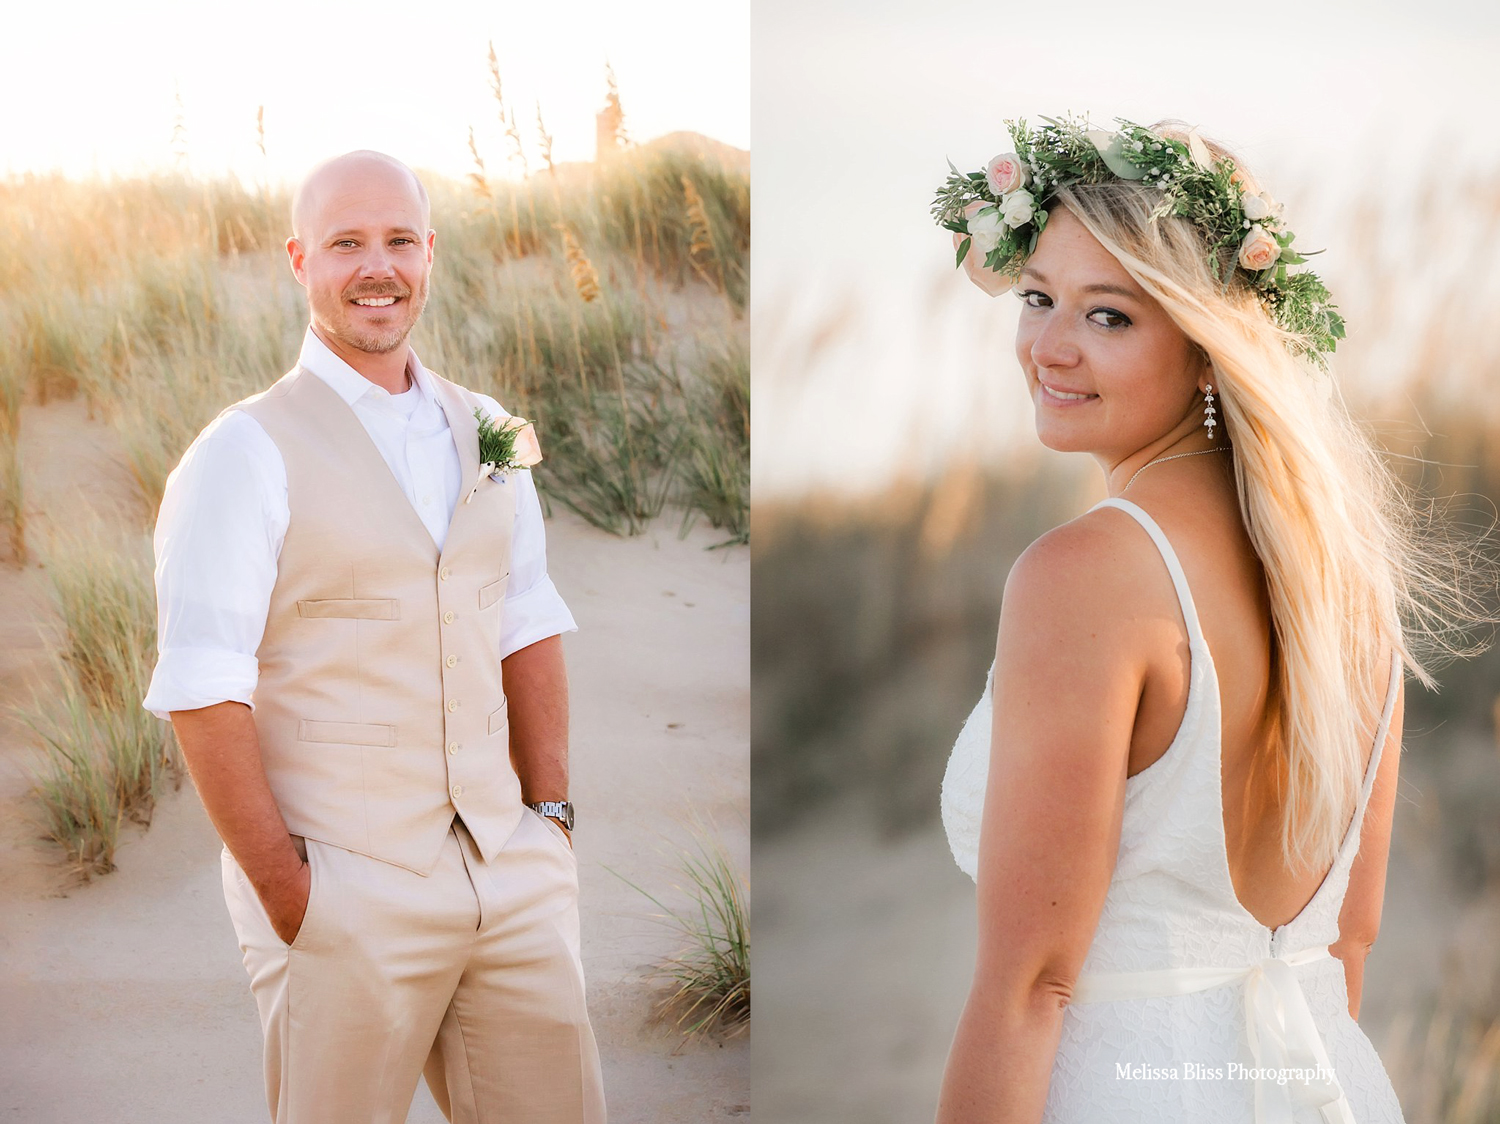 bride-and-groom-portraits-on-the-beach-virginia-beach-oceanfront-wedding-by-melissa-bliss-photography-va-wedding-photographer.jpg